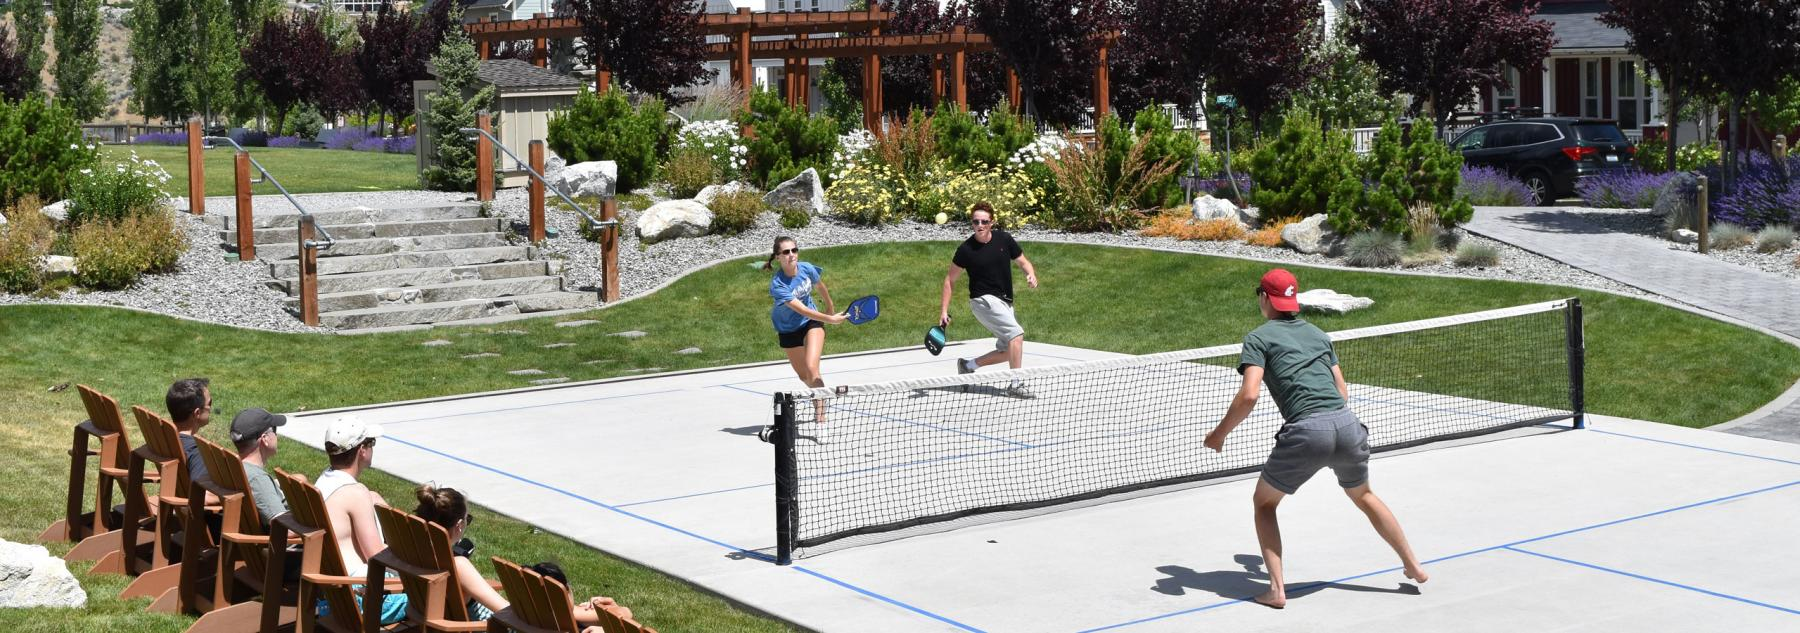 Pickleball The Lookout at Lake Chelan